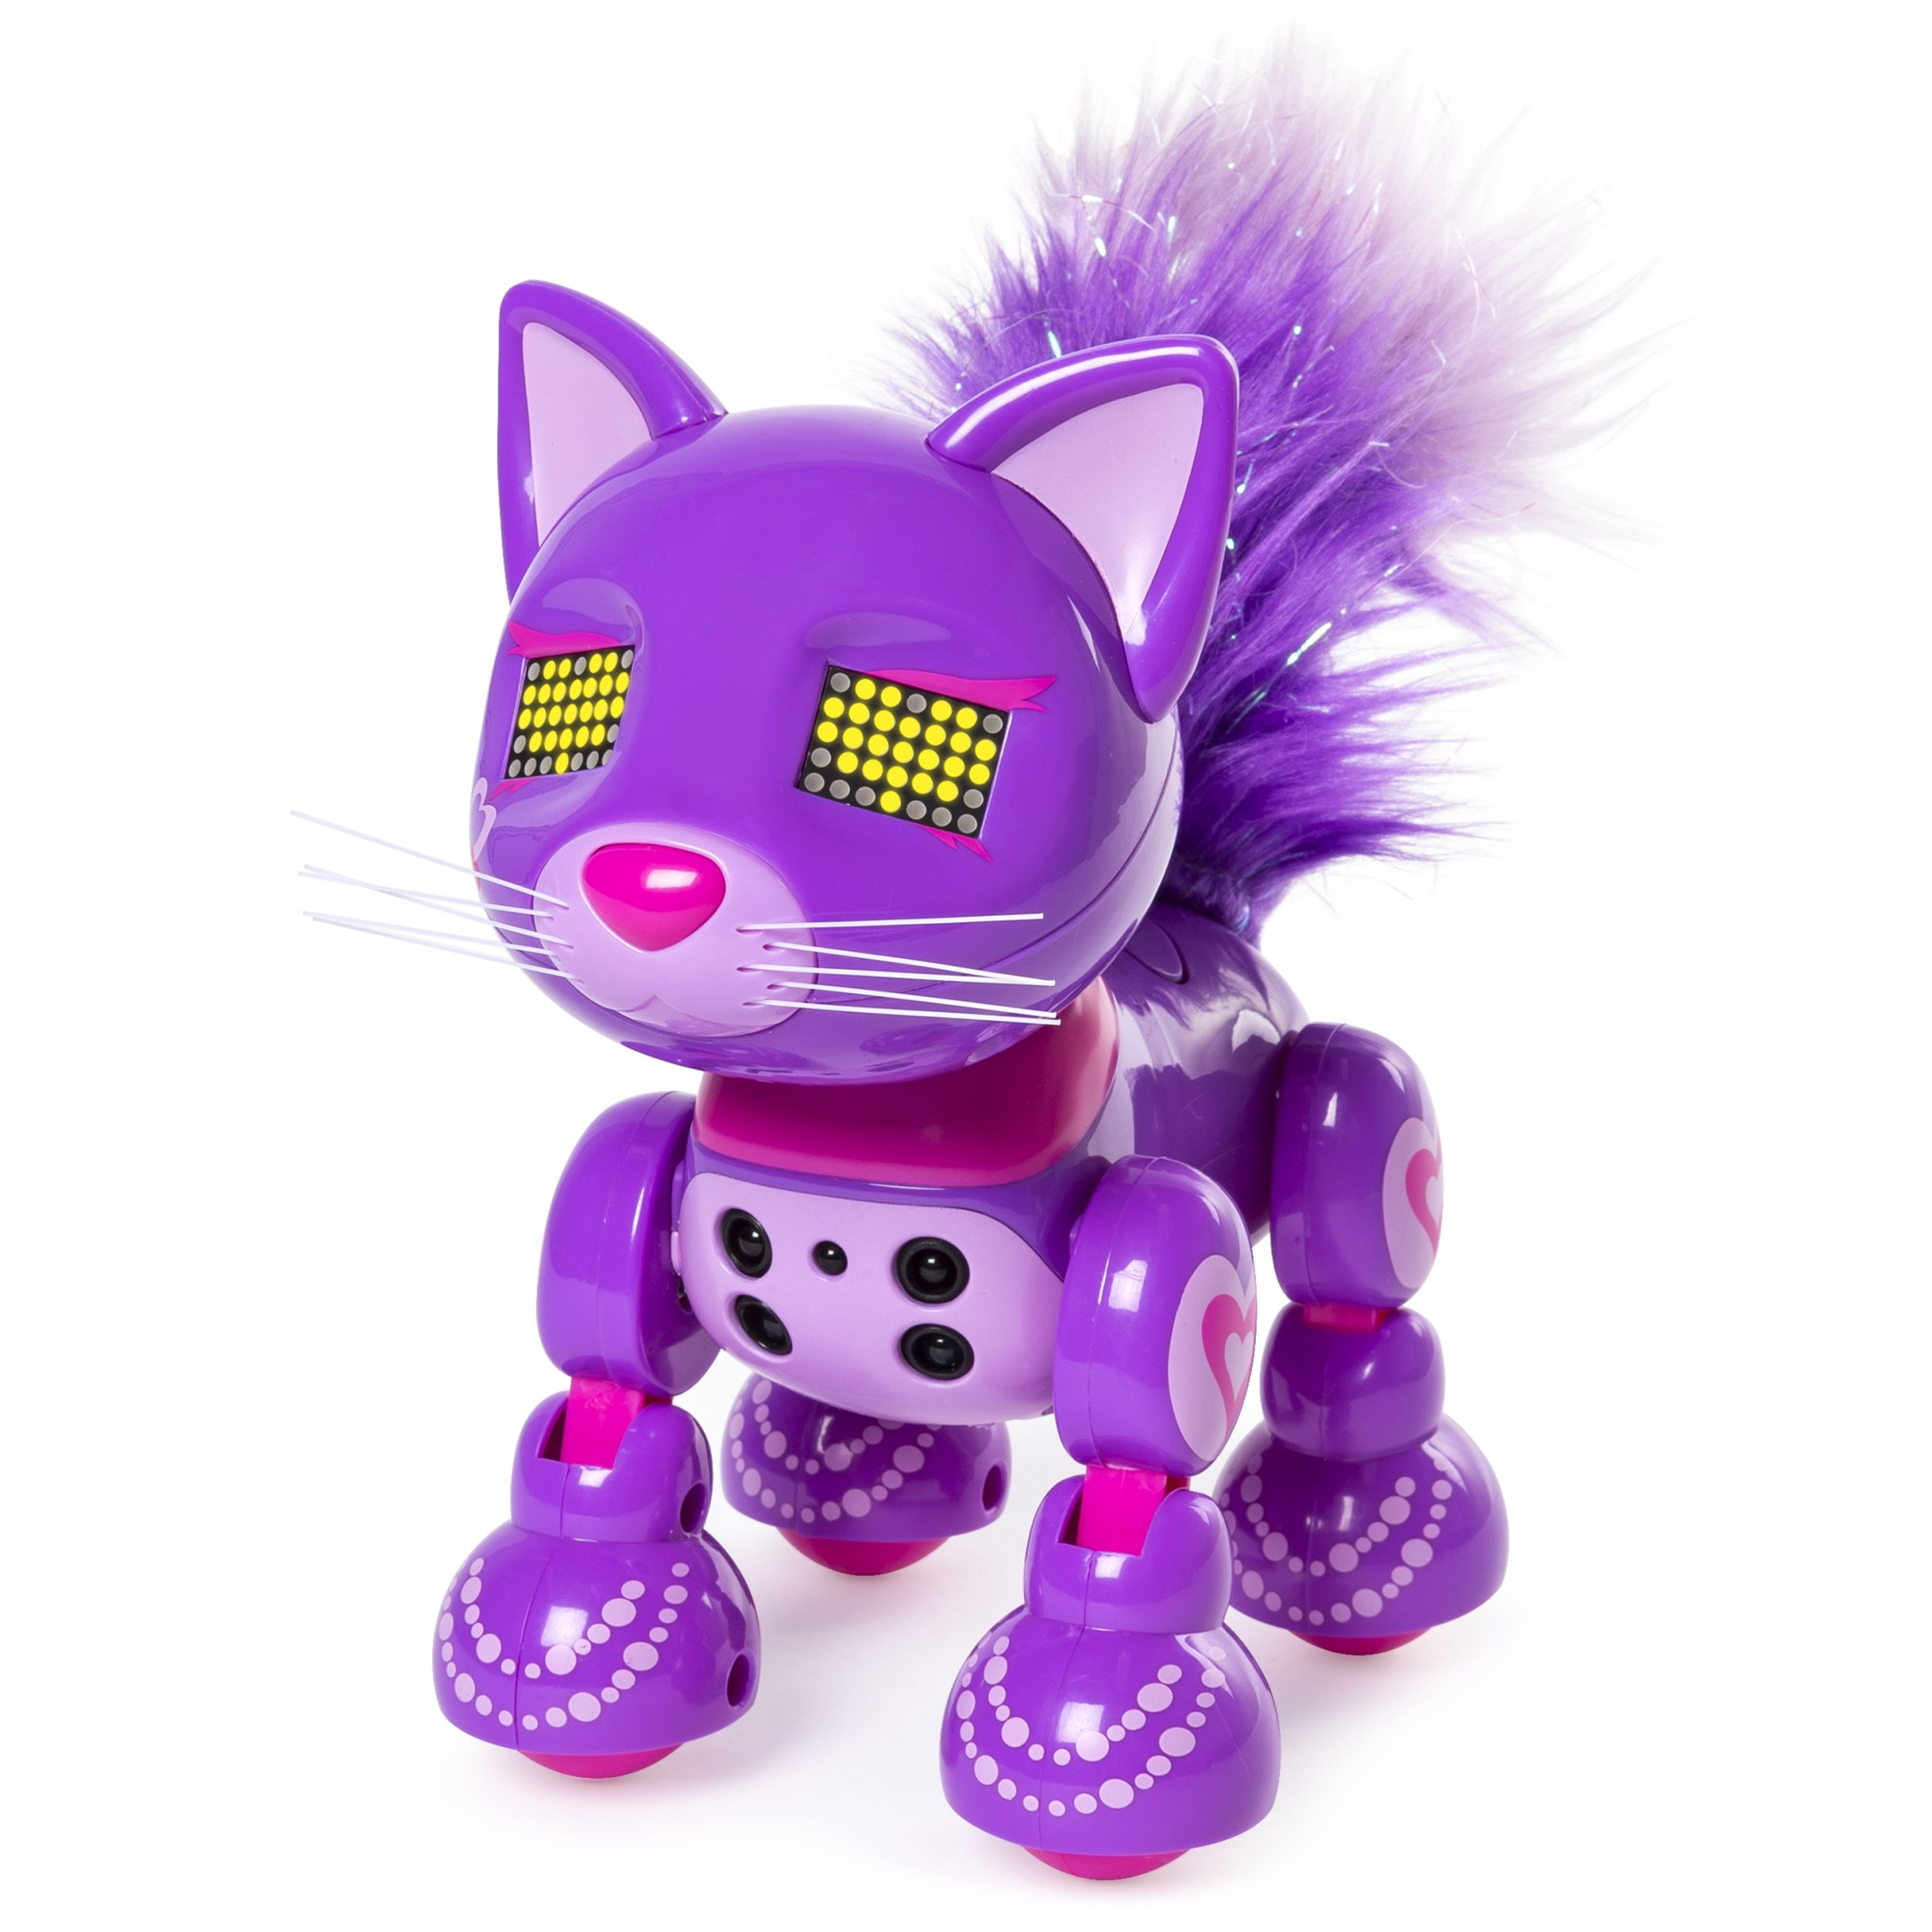 Zoomer Meowzies, Posh, Interactive Kitten with Lights, Sounds and Sensors by Zoomer (Image #3)